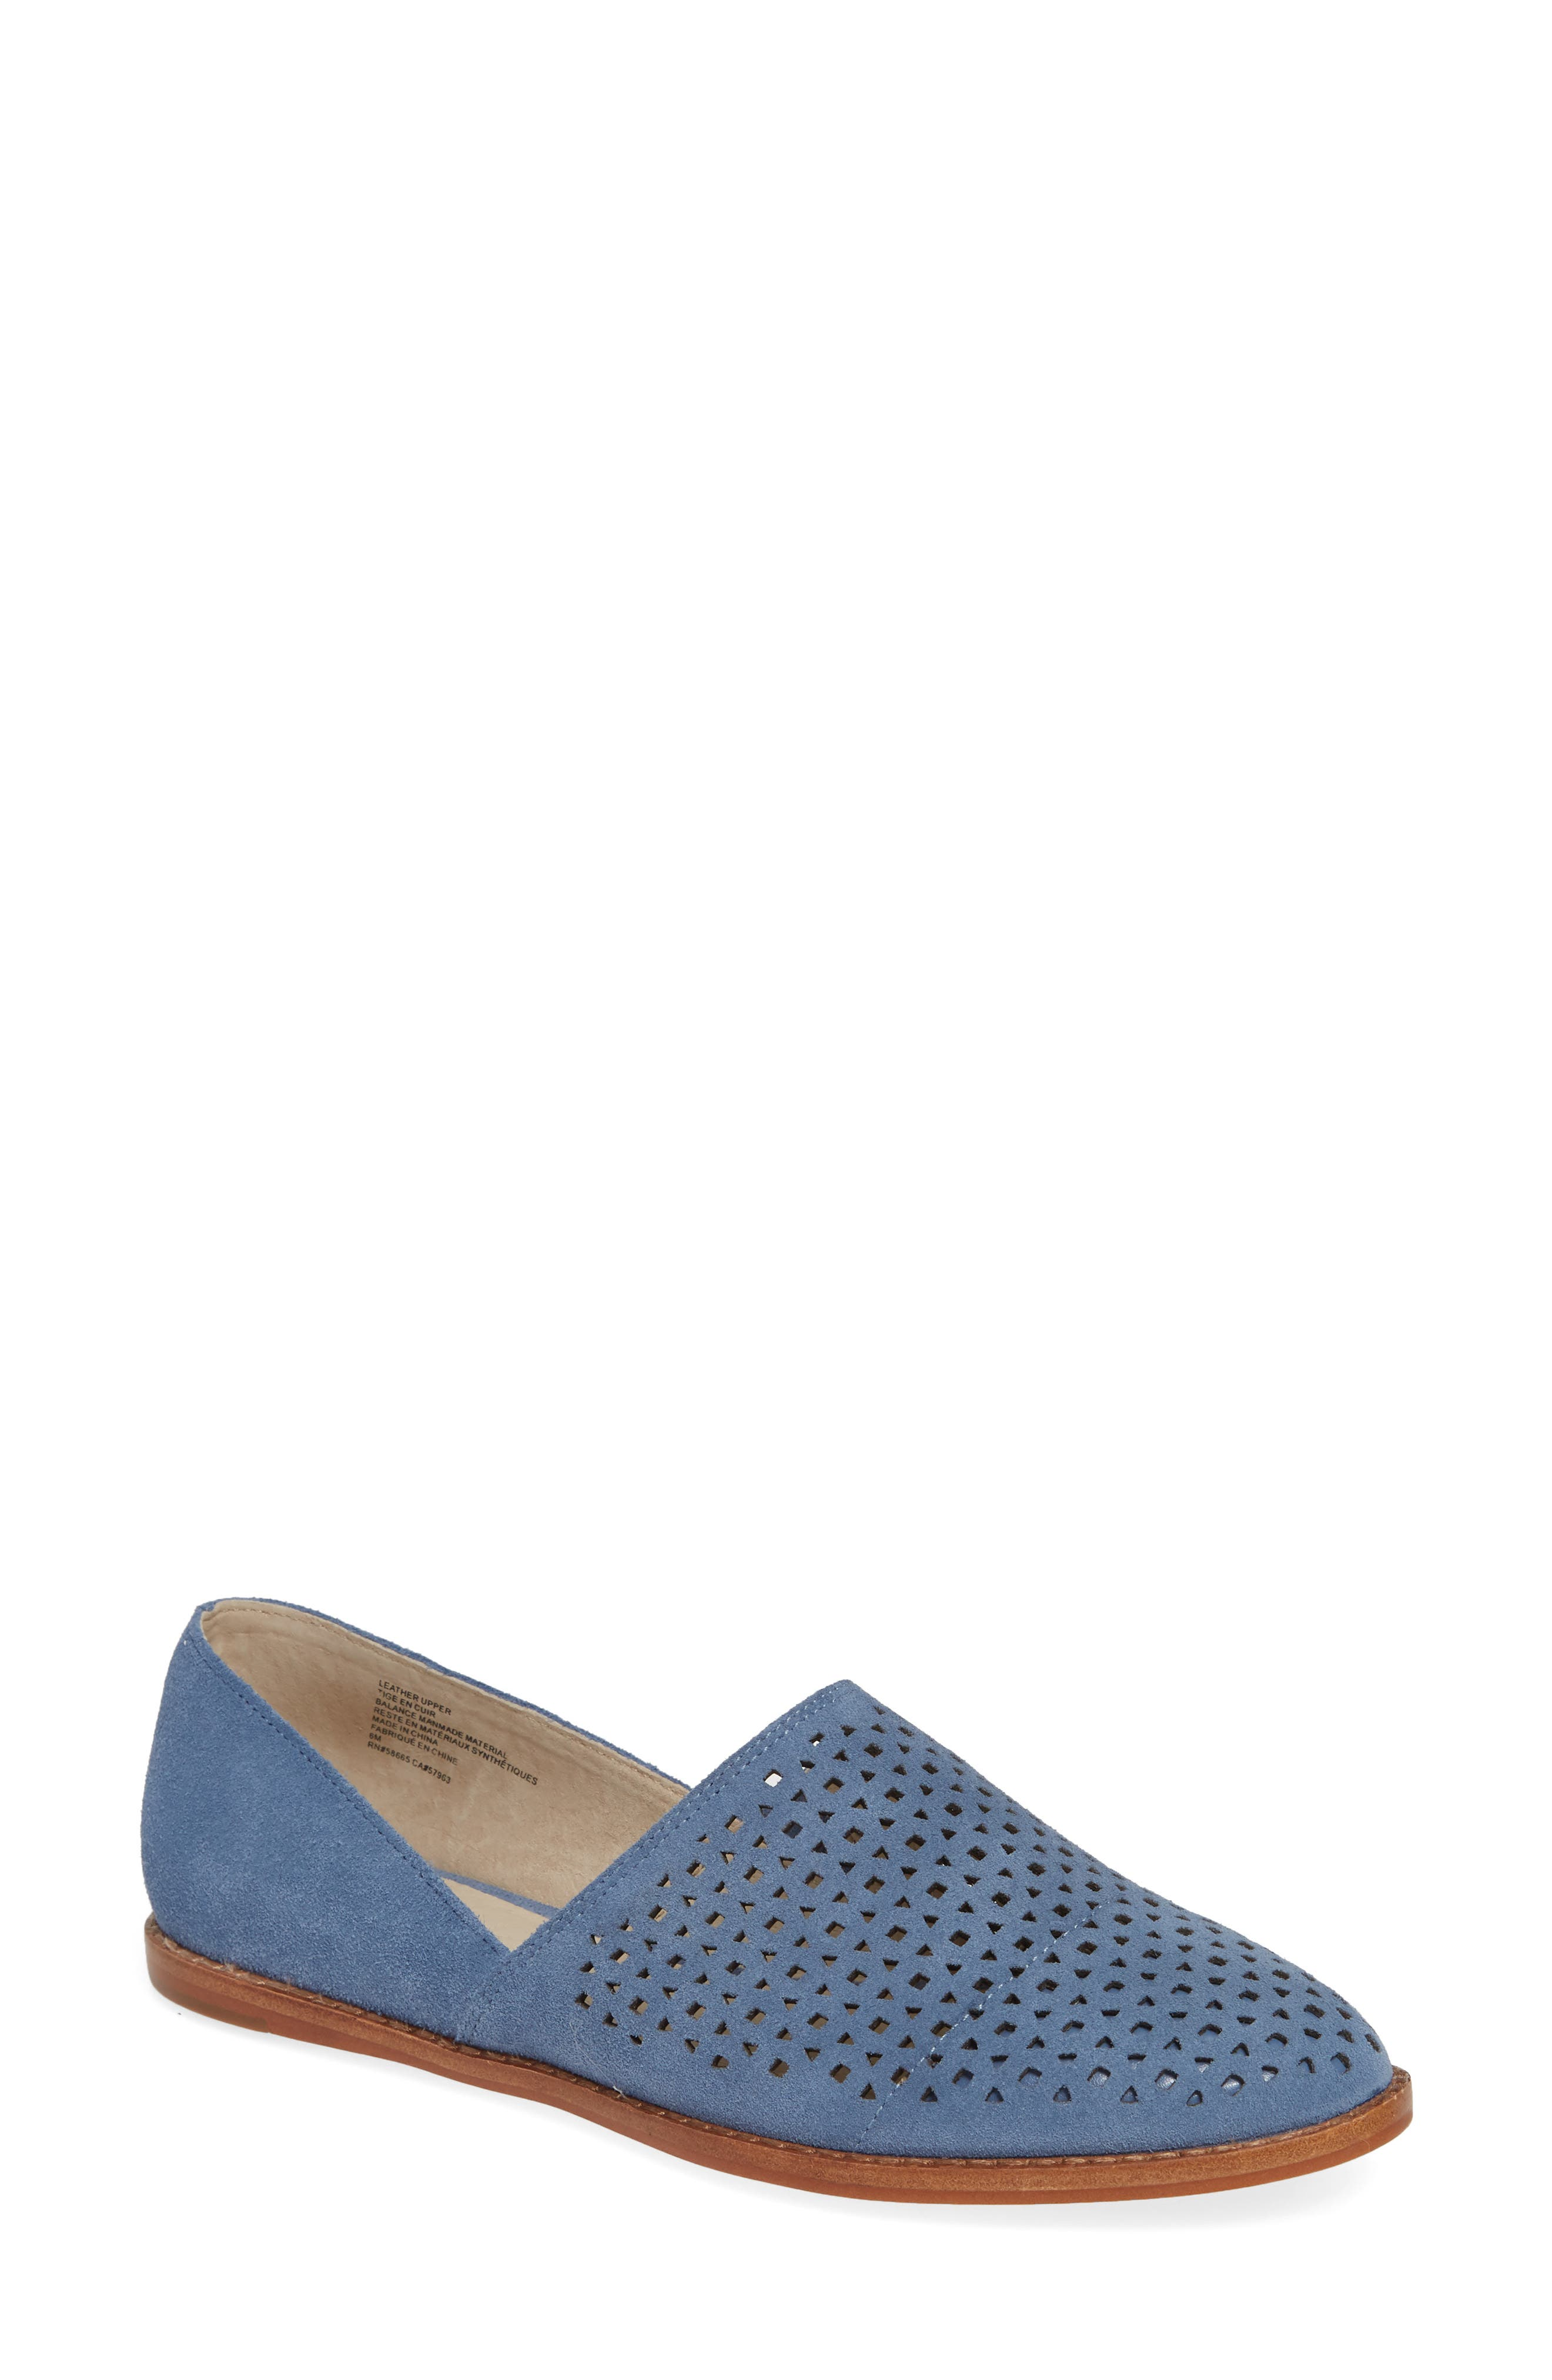 Caslon Adrian Perforated Flat, Blue